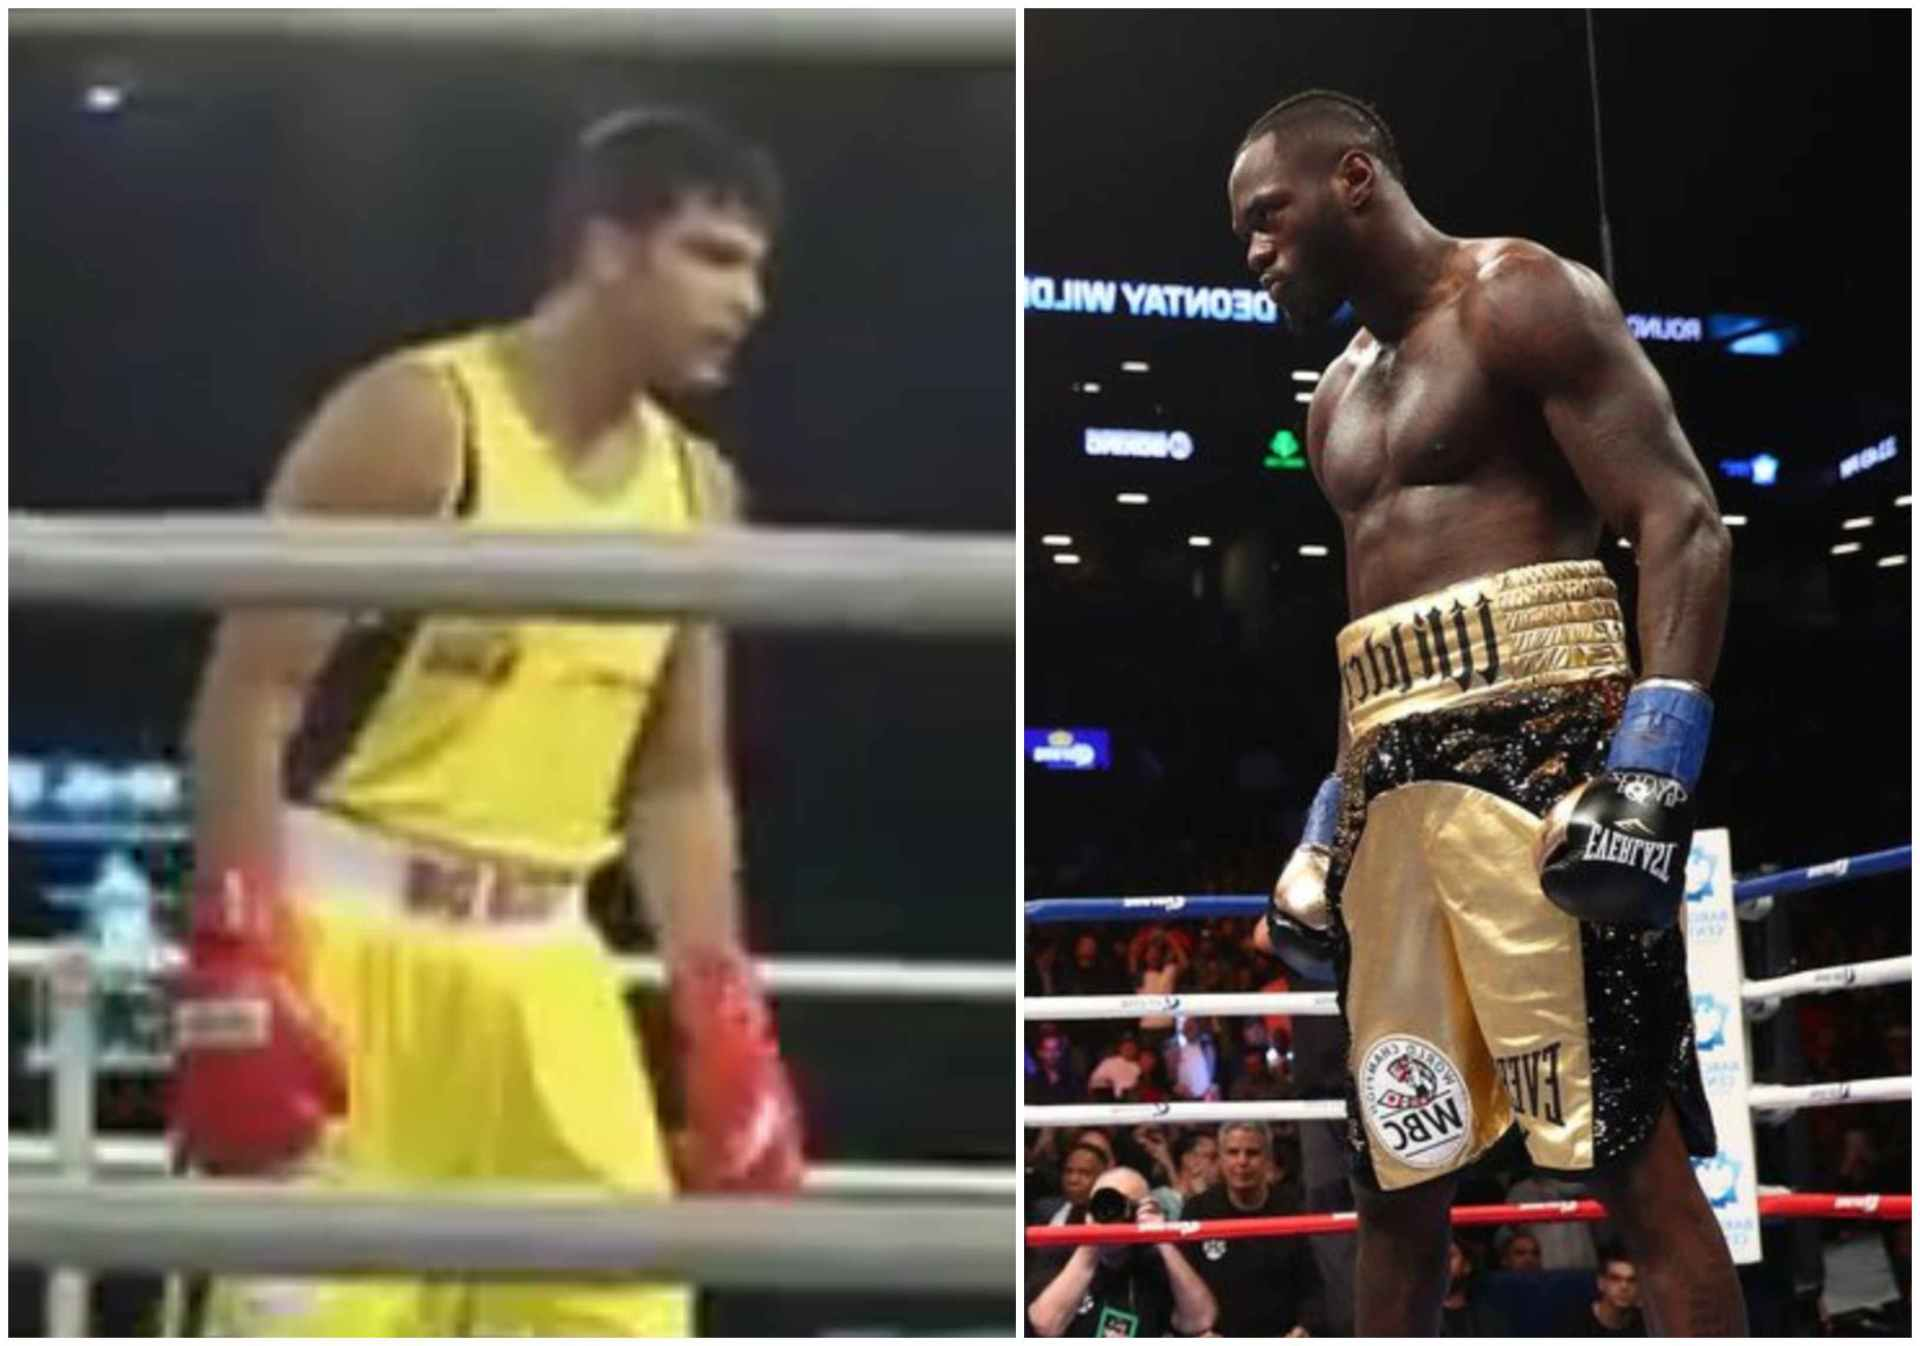 VIDEO: Indian star Naman Tanwar channels his inner Deontay Wilder in Big Bout League - Naman